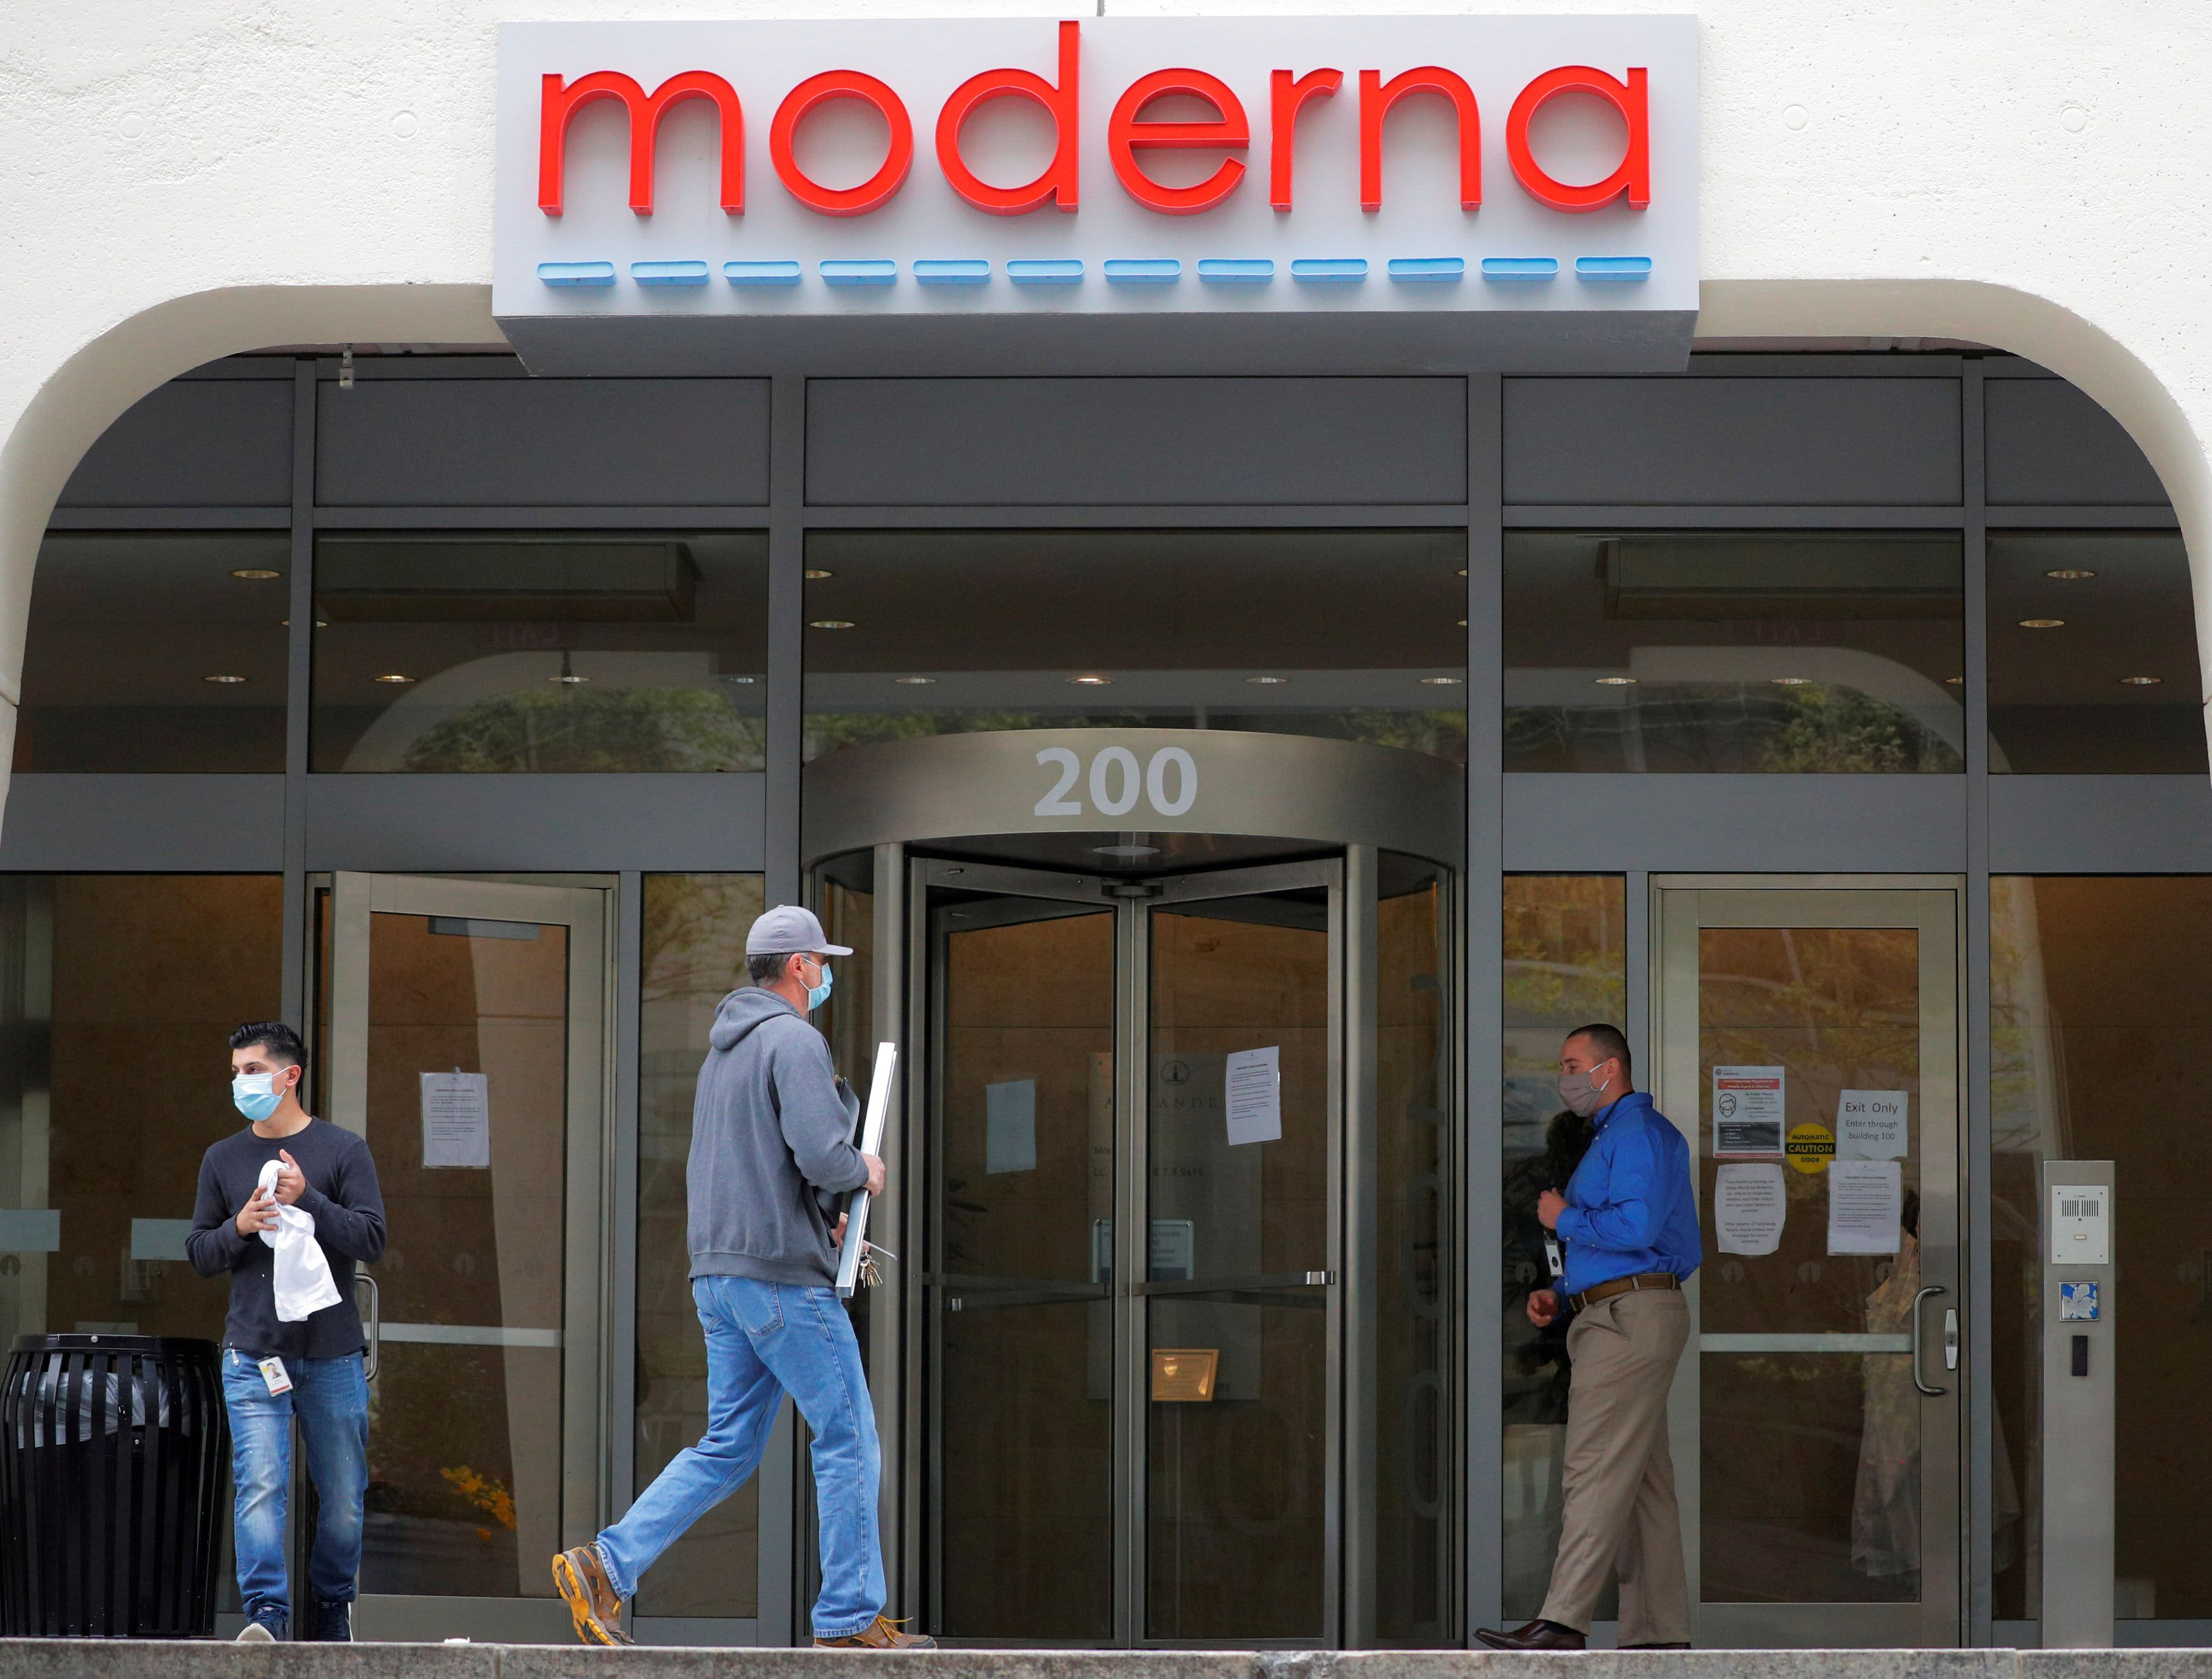 Moderna says it's preparing global launch of Covid vaccine as it takes in $1.1 billion in deposits